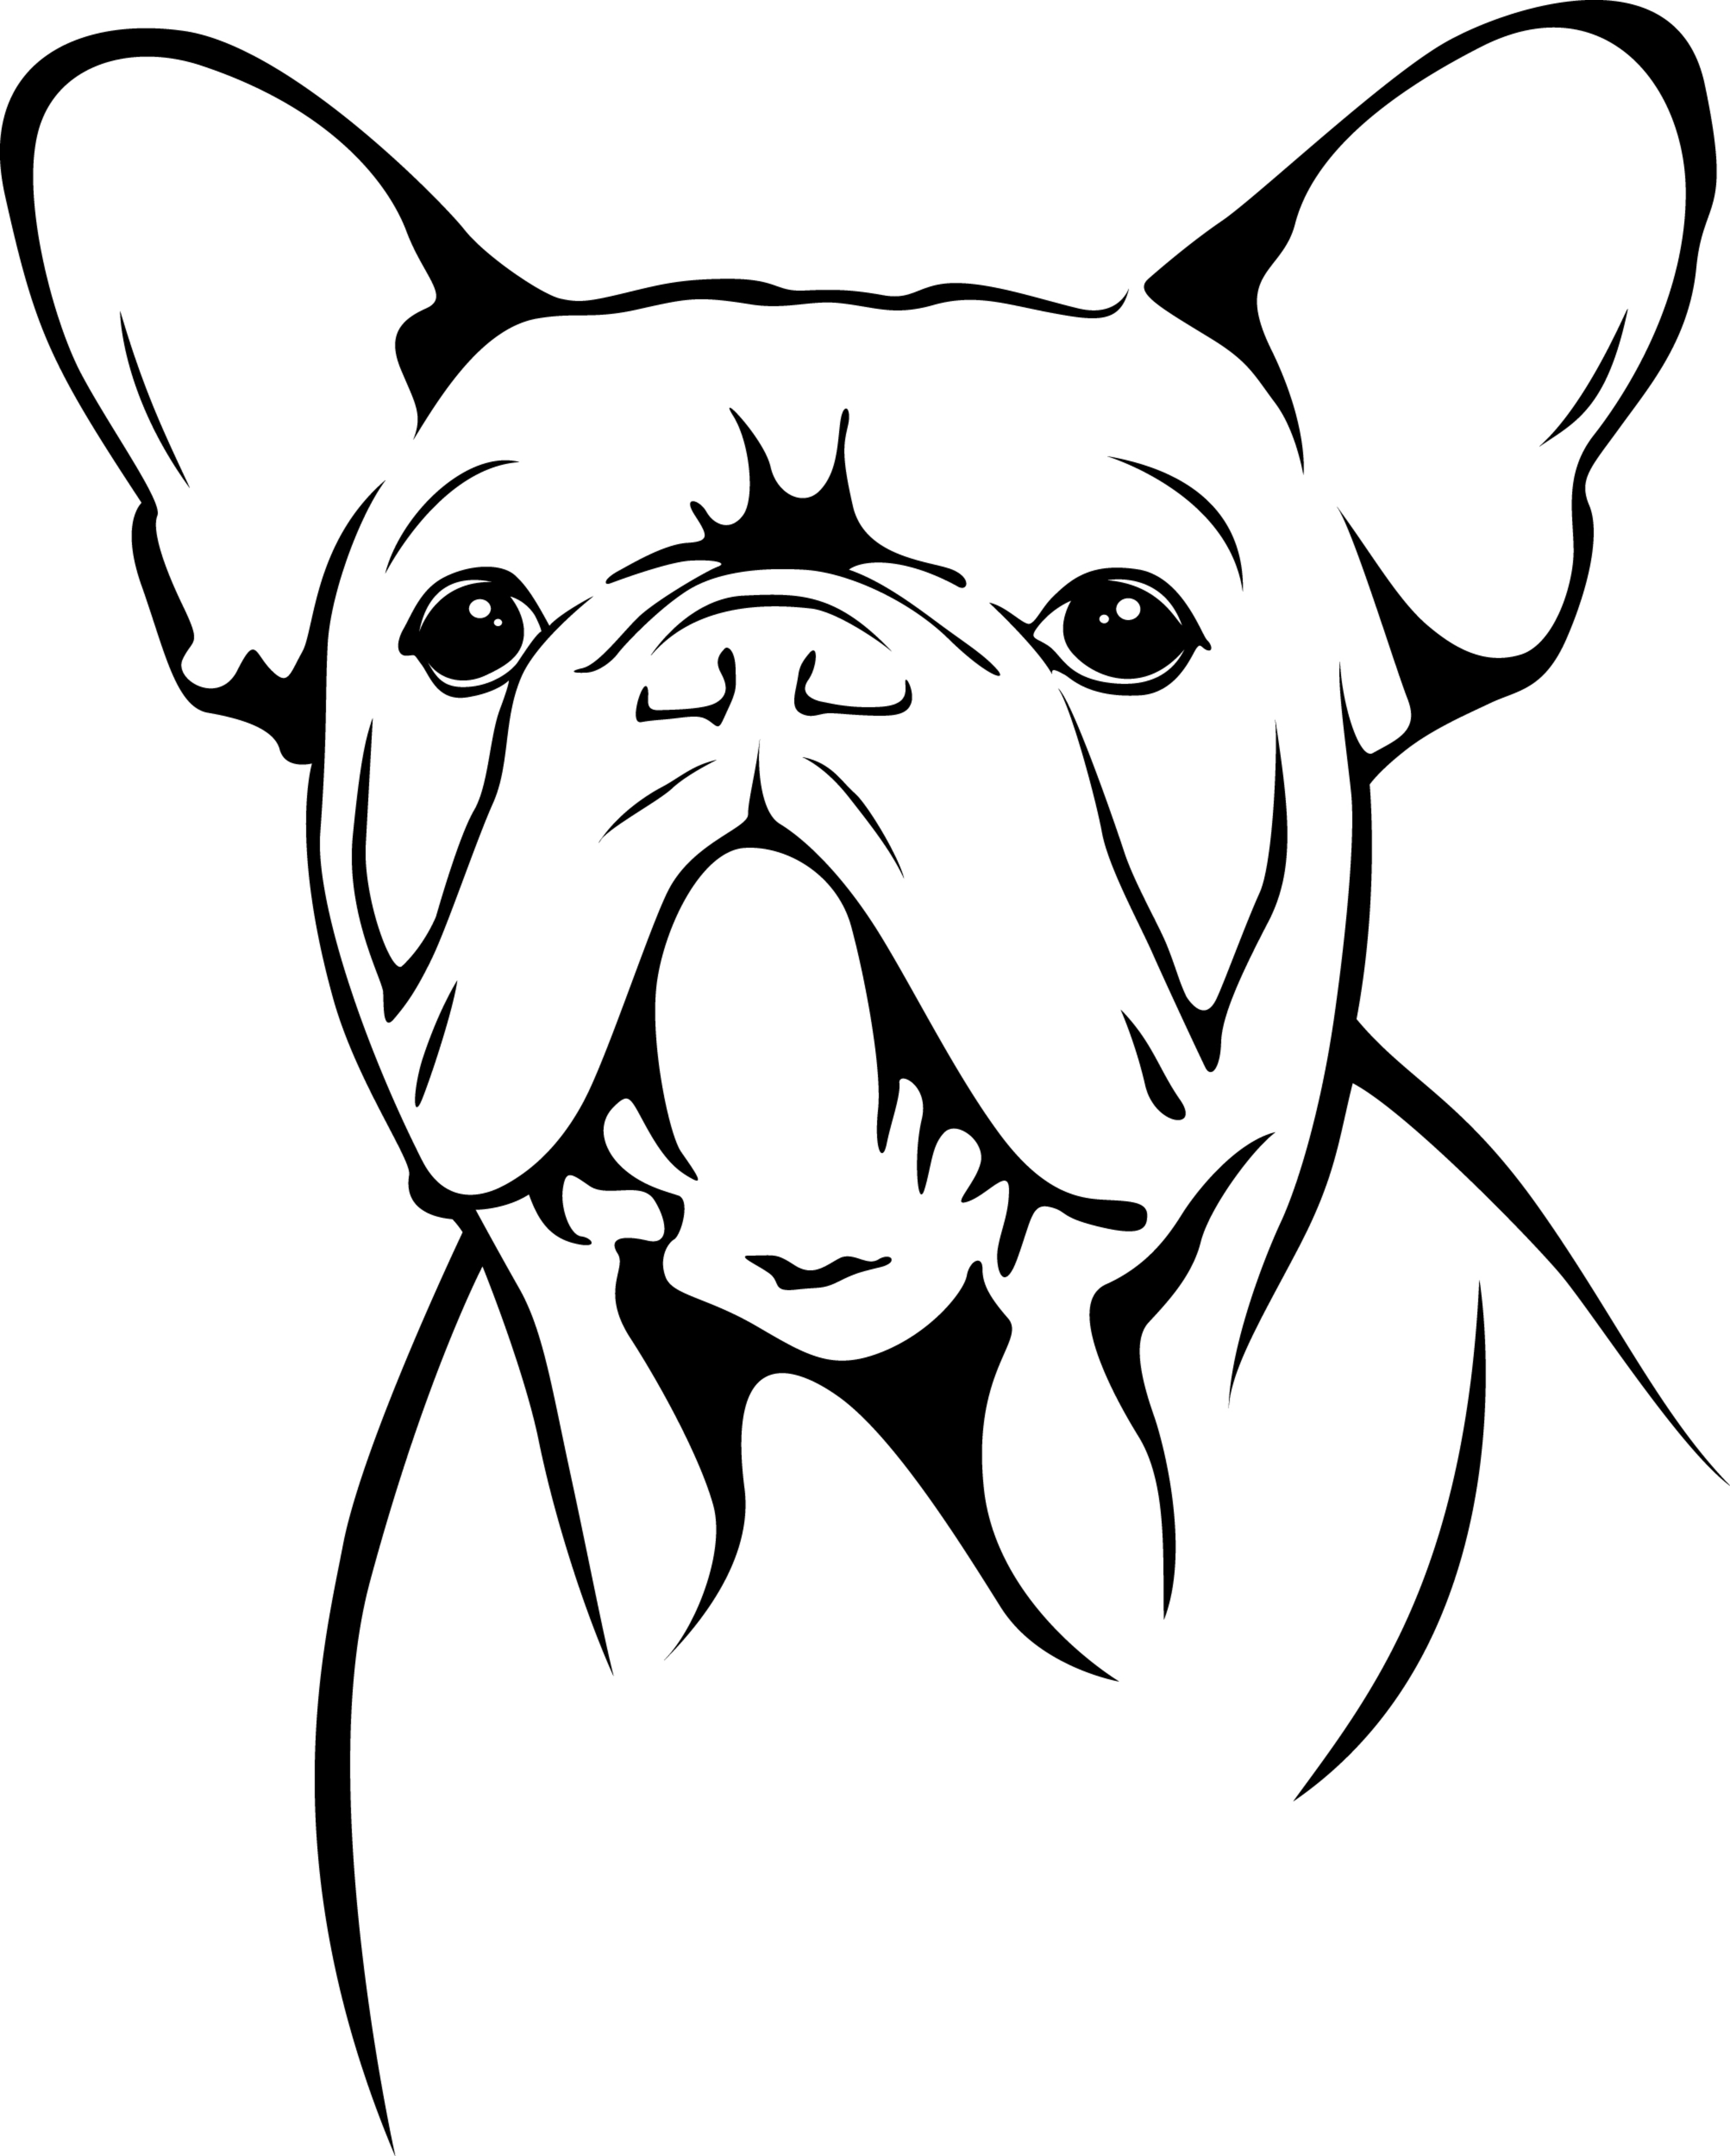 3469x4324 Superb Georgia Bulldogs Coloring Pages With Bulldog Coloring Pages